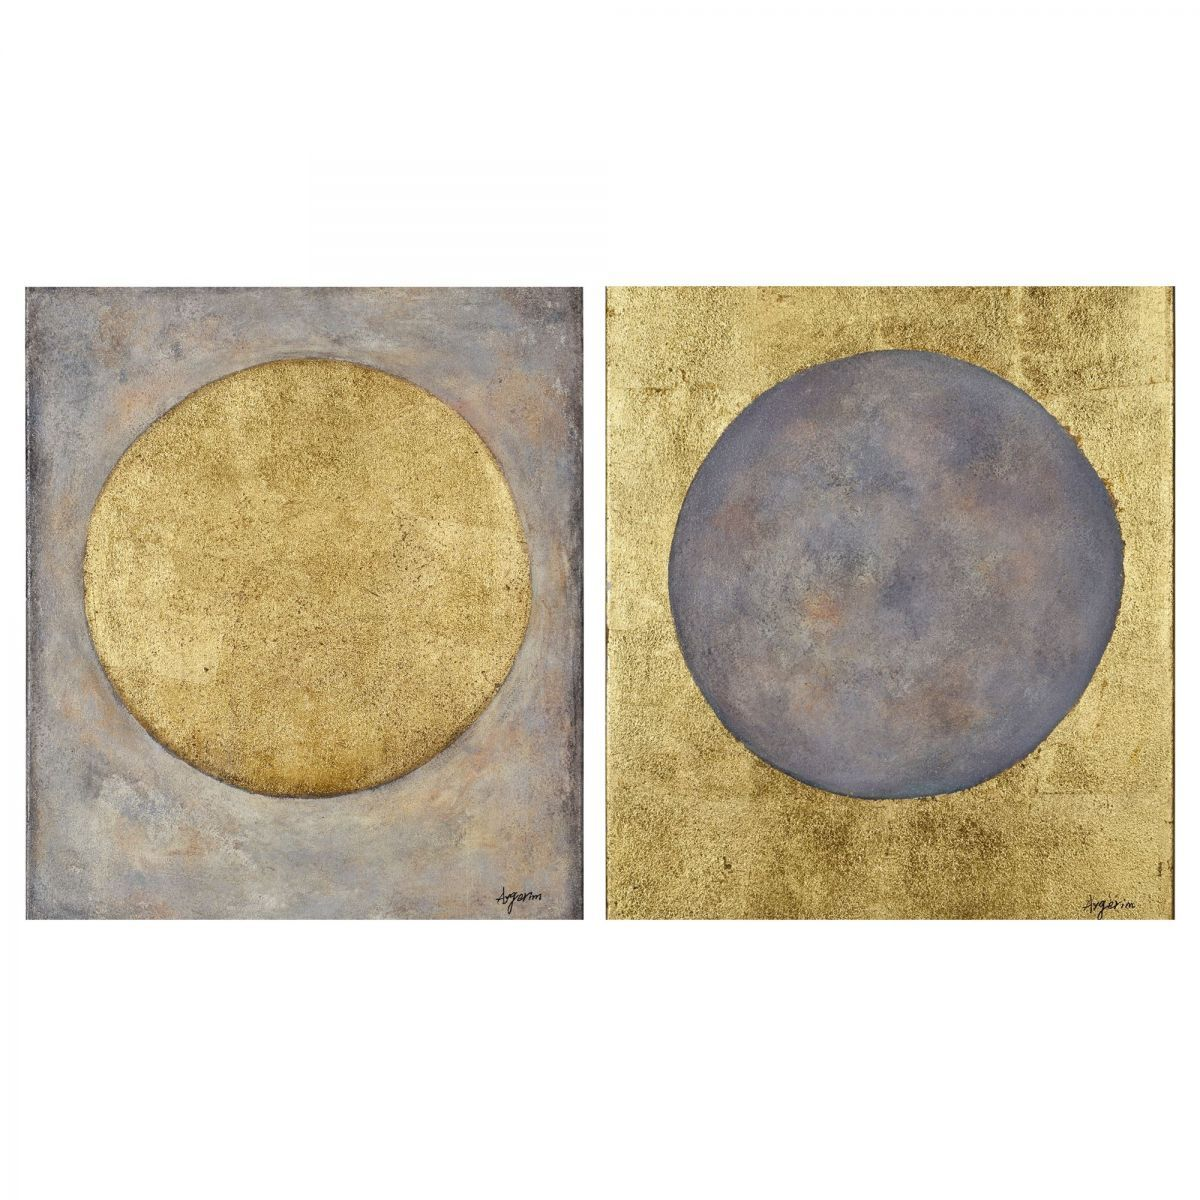 Hand-painted on canvas - Gold leaf accents   Artwork   Pinterest ...